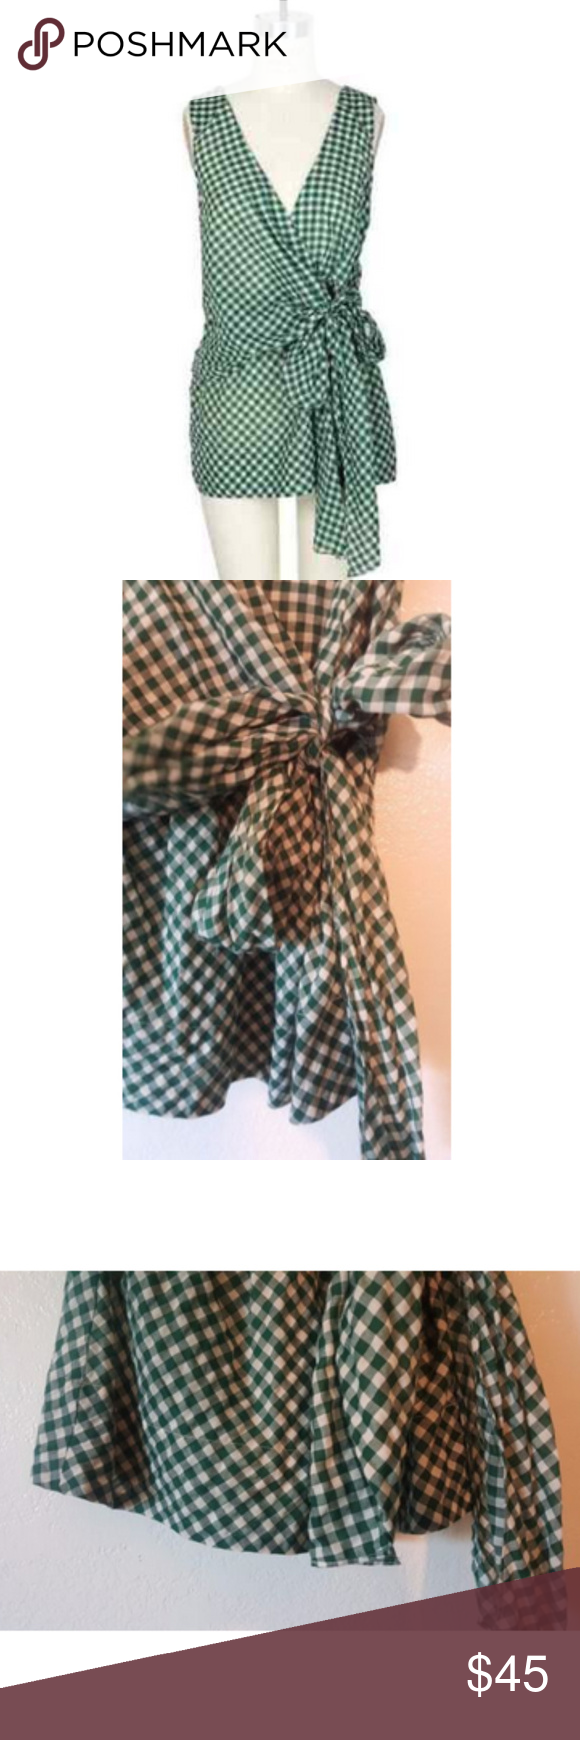 Odille Green Swathed Gingham Front Knot Wrap Blous Brand